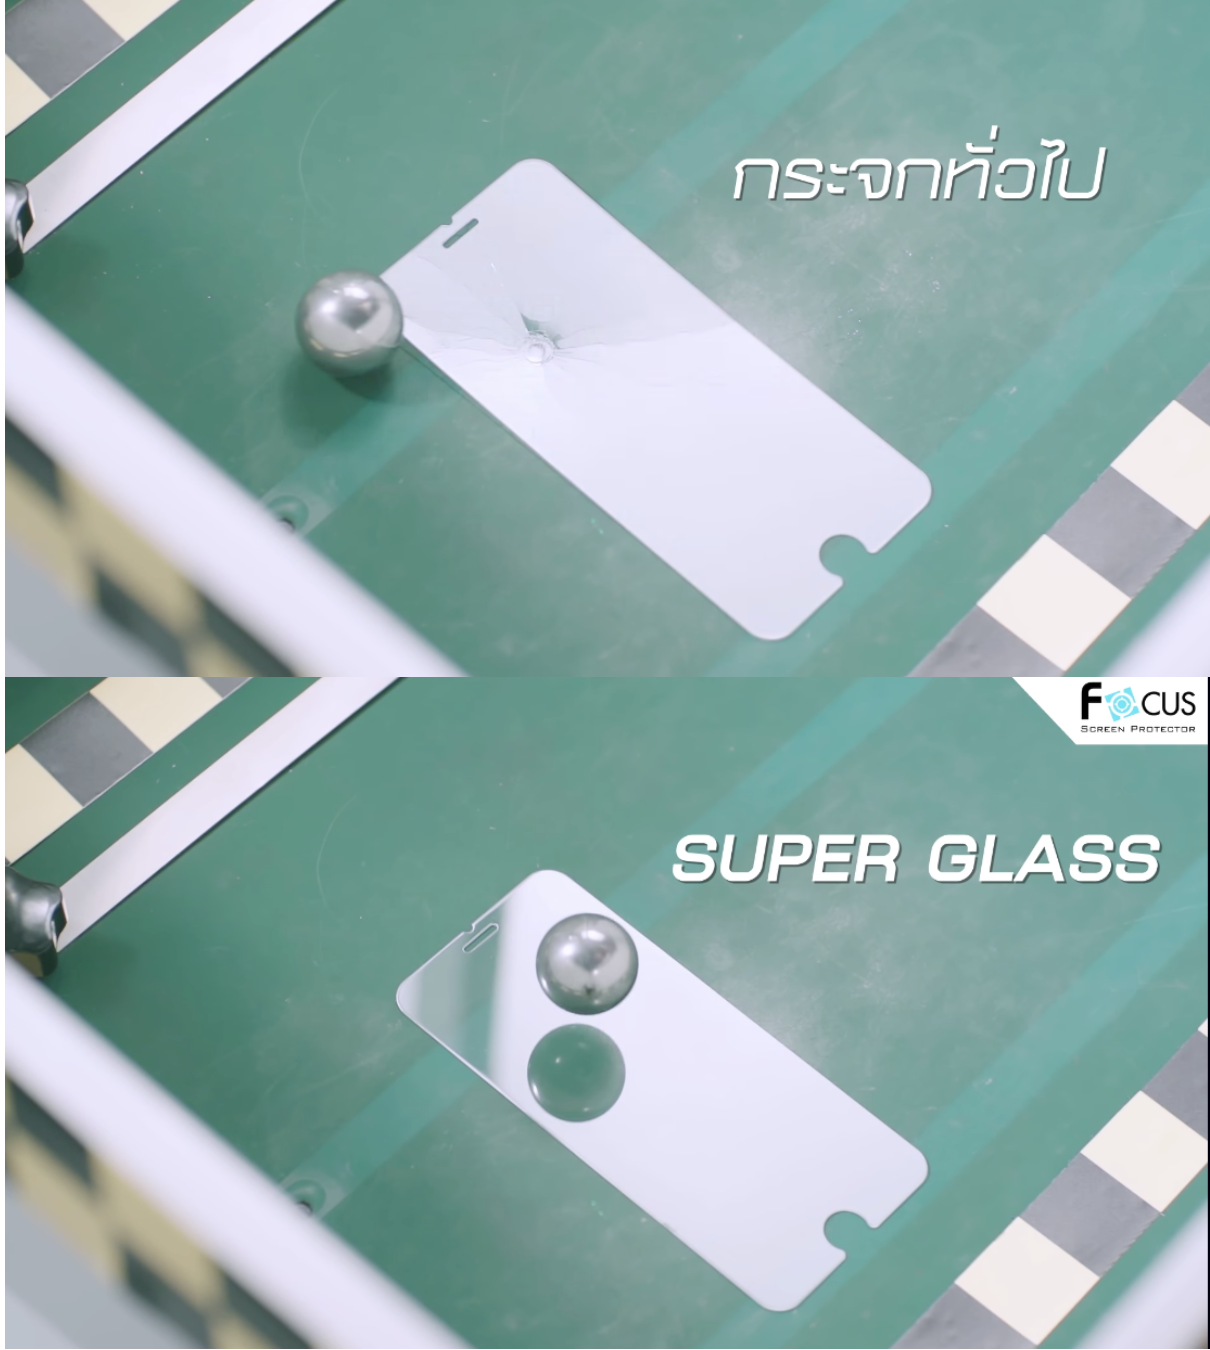 review-focus-super-glass-iPhone-flashfly-05